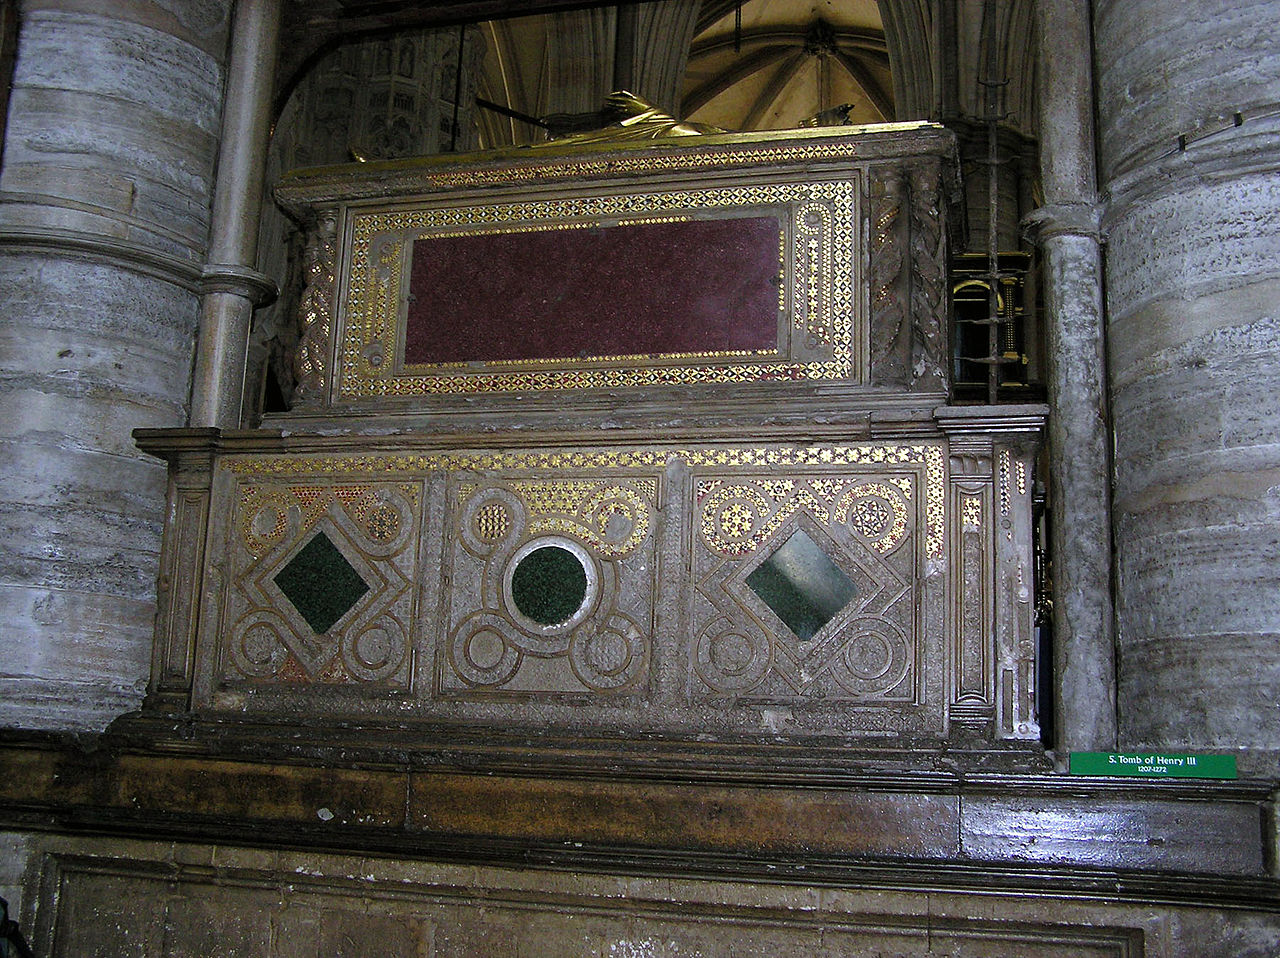 Photograph of Henry's tomb